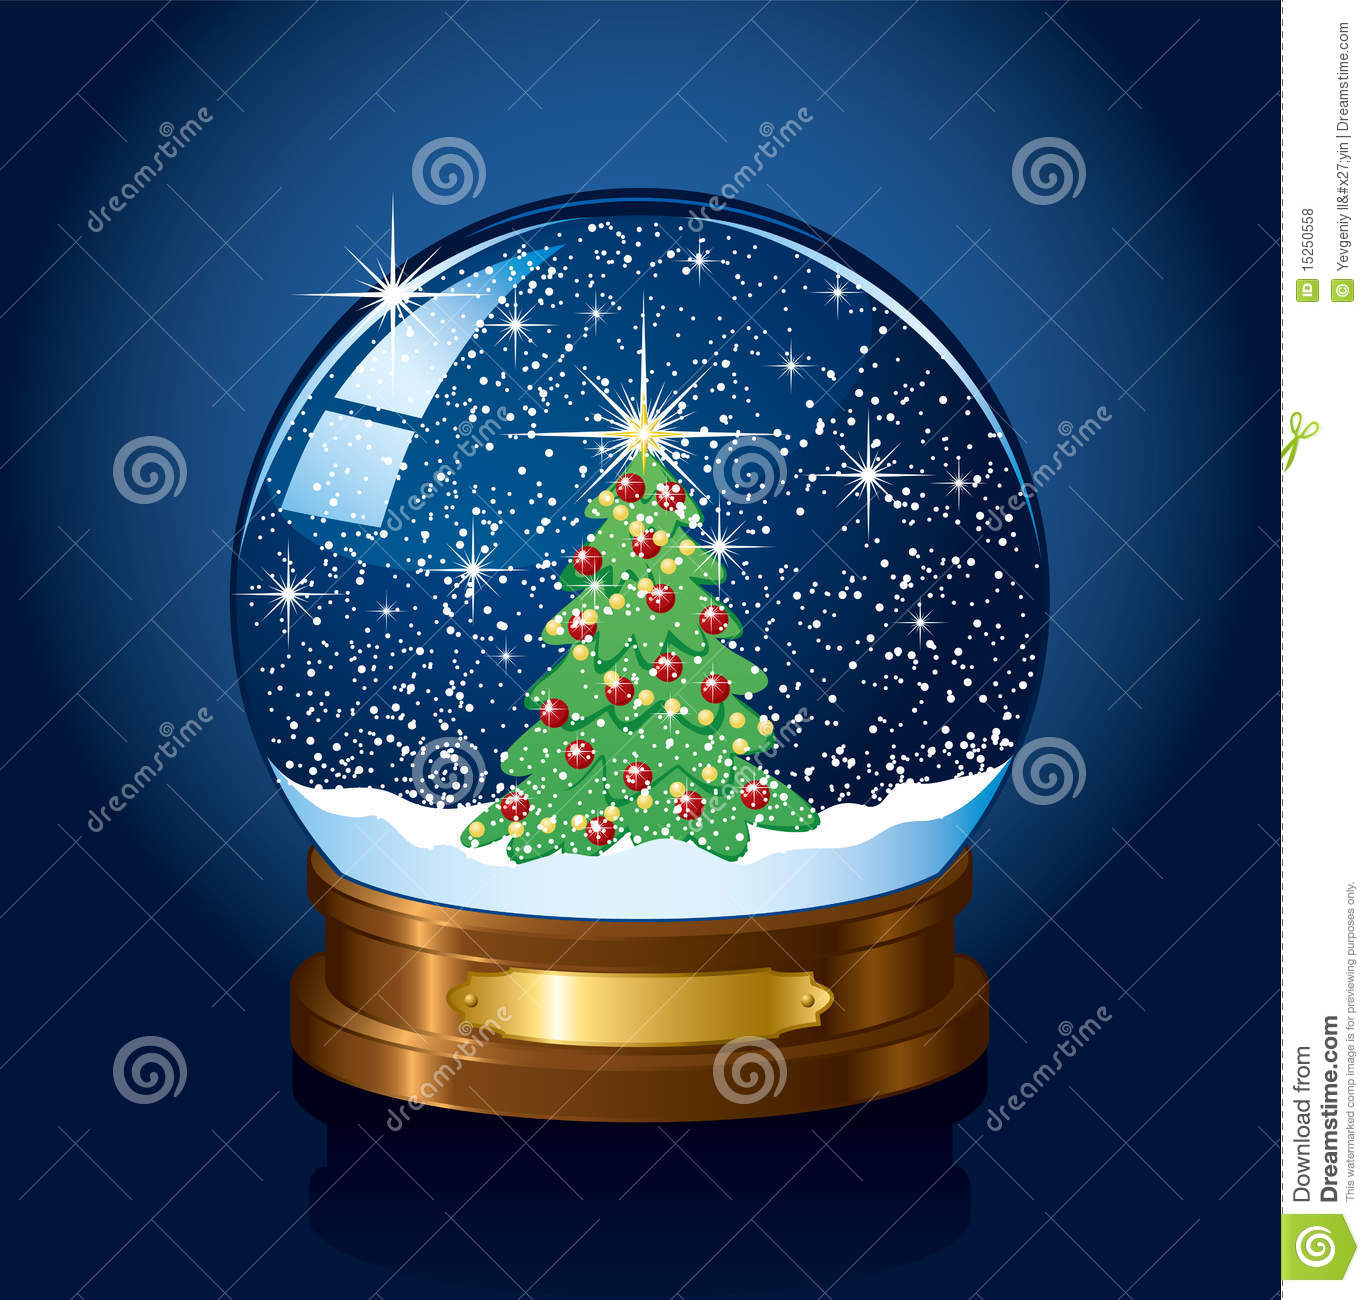 download snow globe with christmas tree stock vector illustration of cold night 15250558